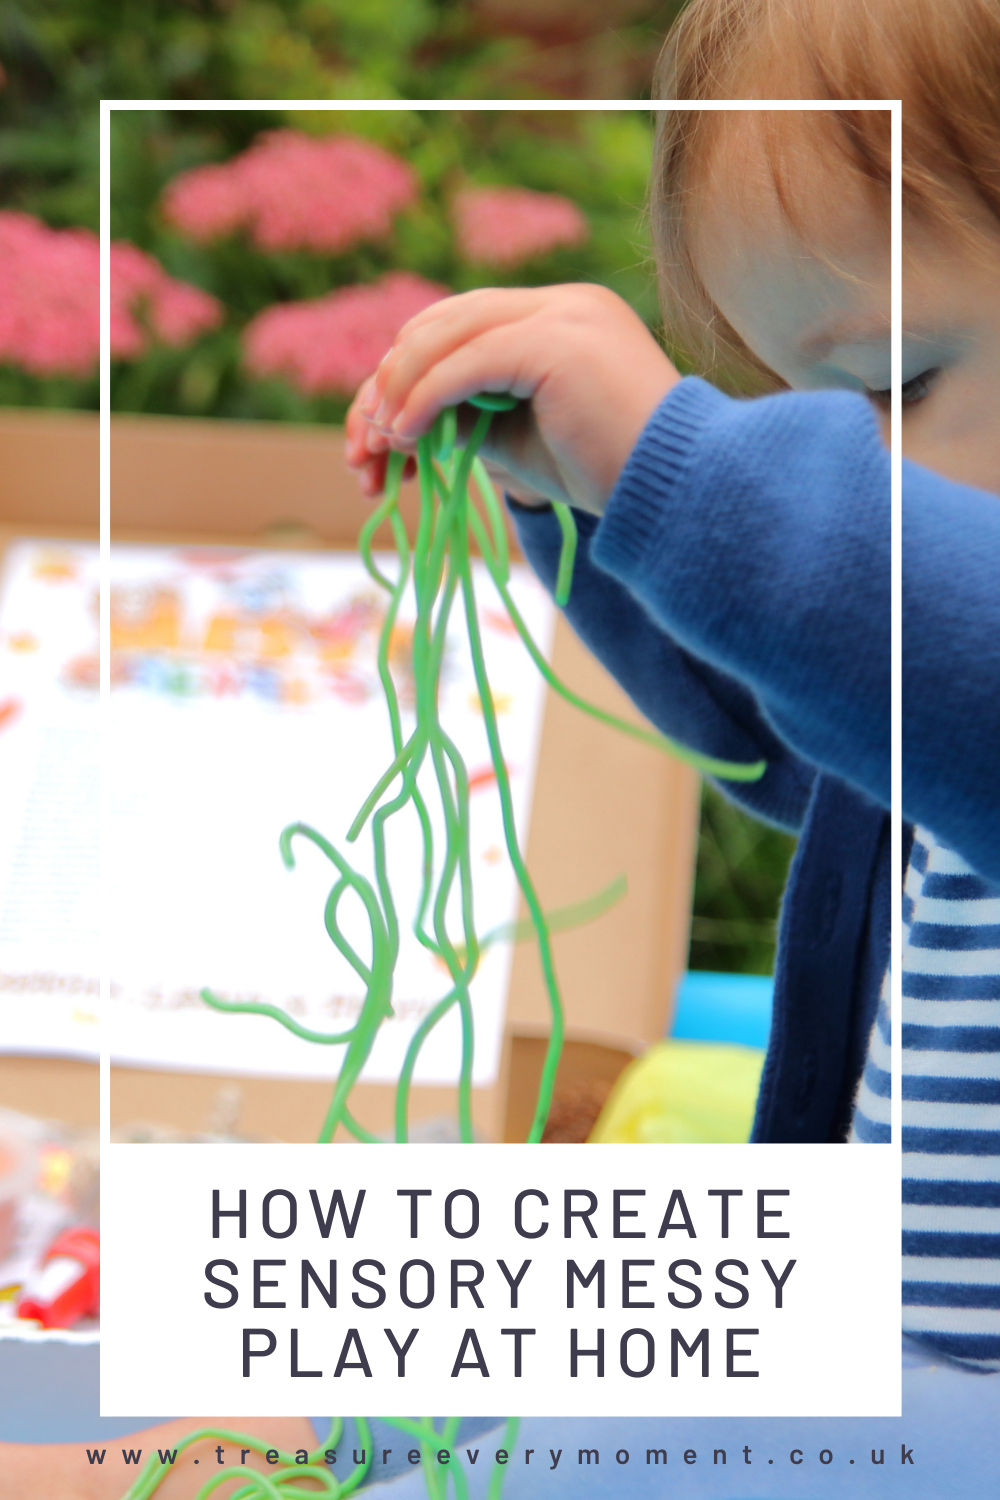 BABY & TODDLER: How to Create Sensory Messy Play Home with Messy Senses